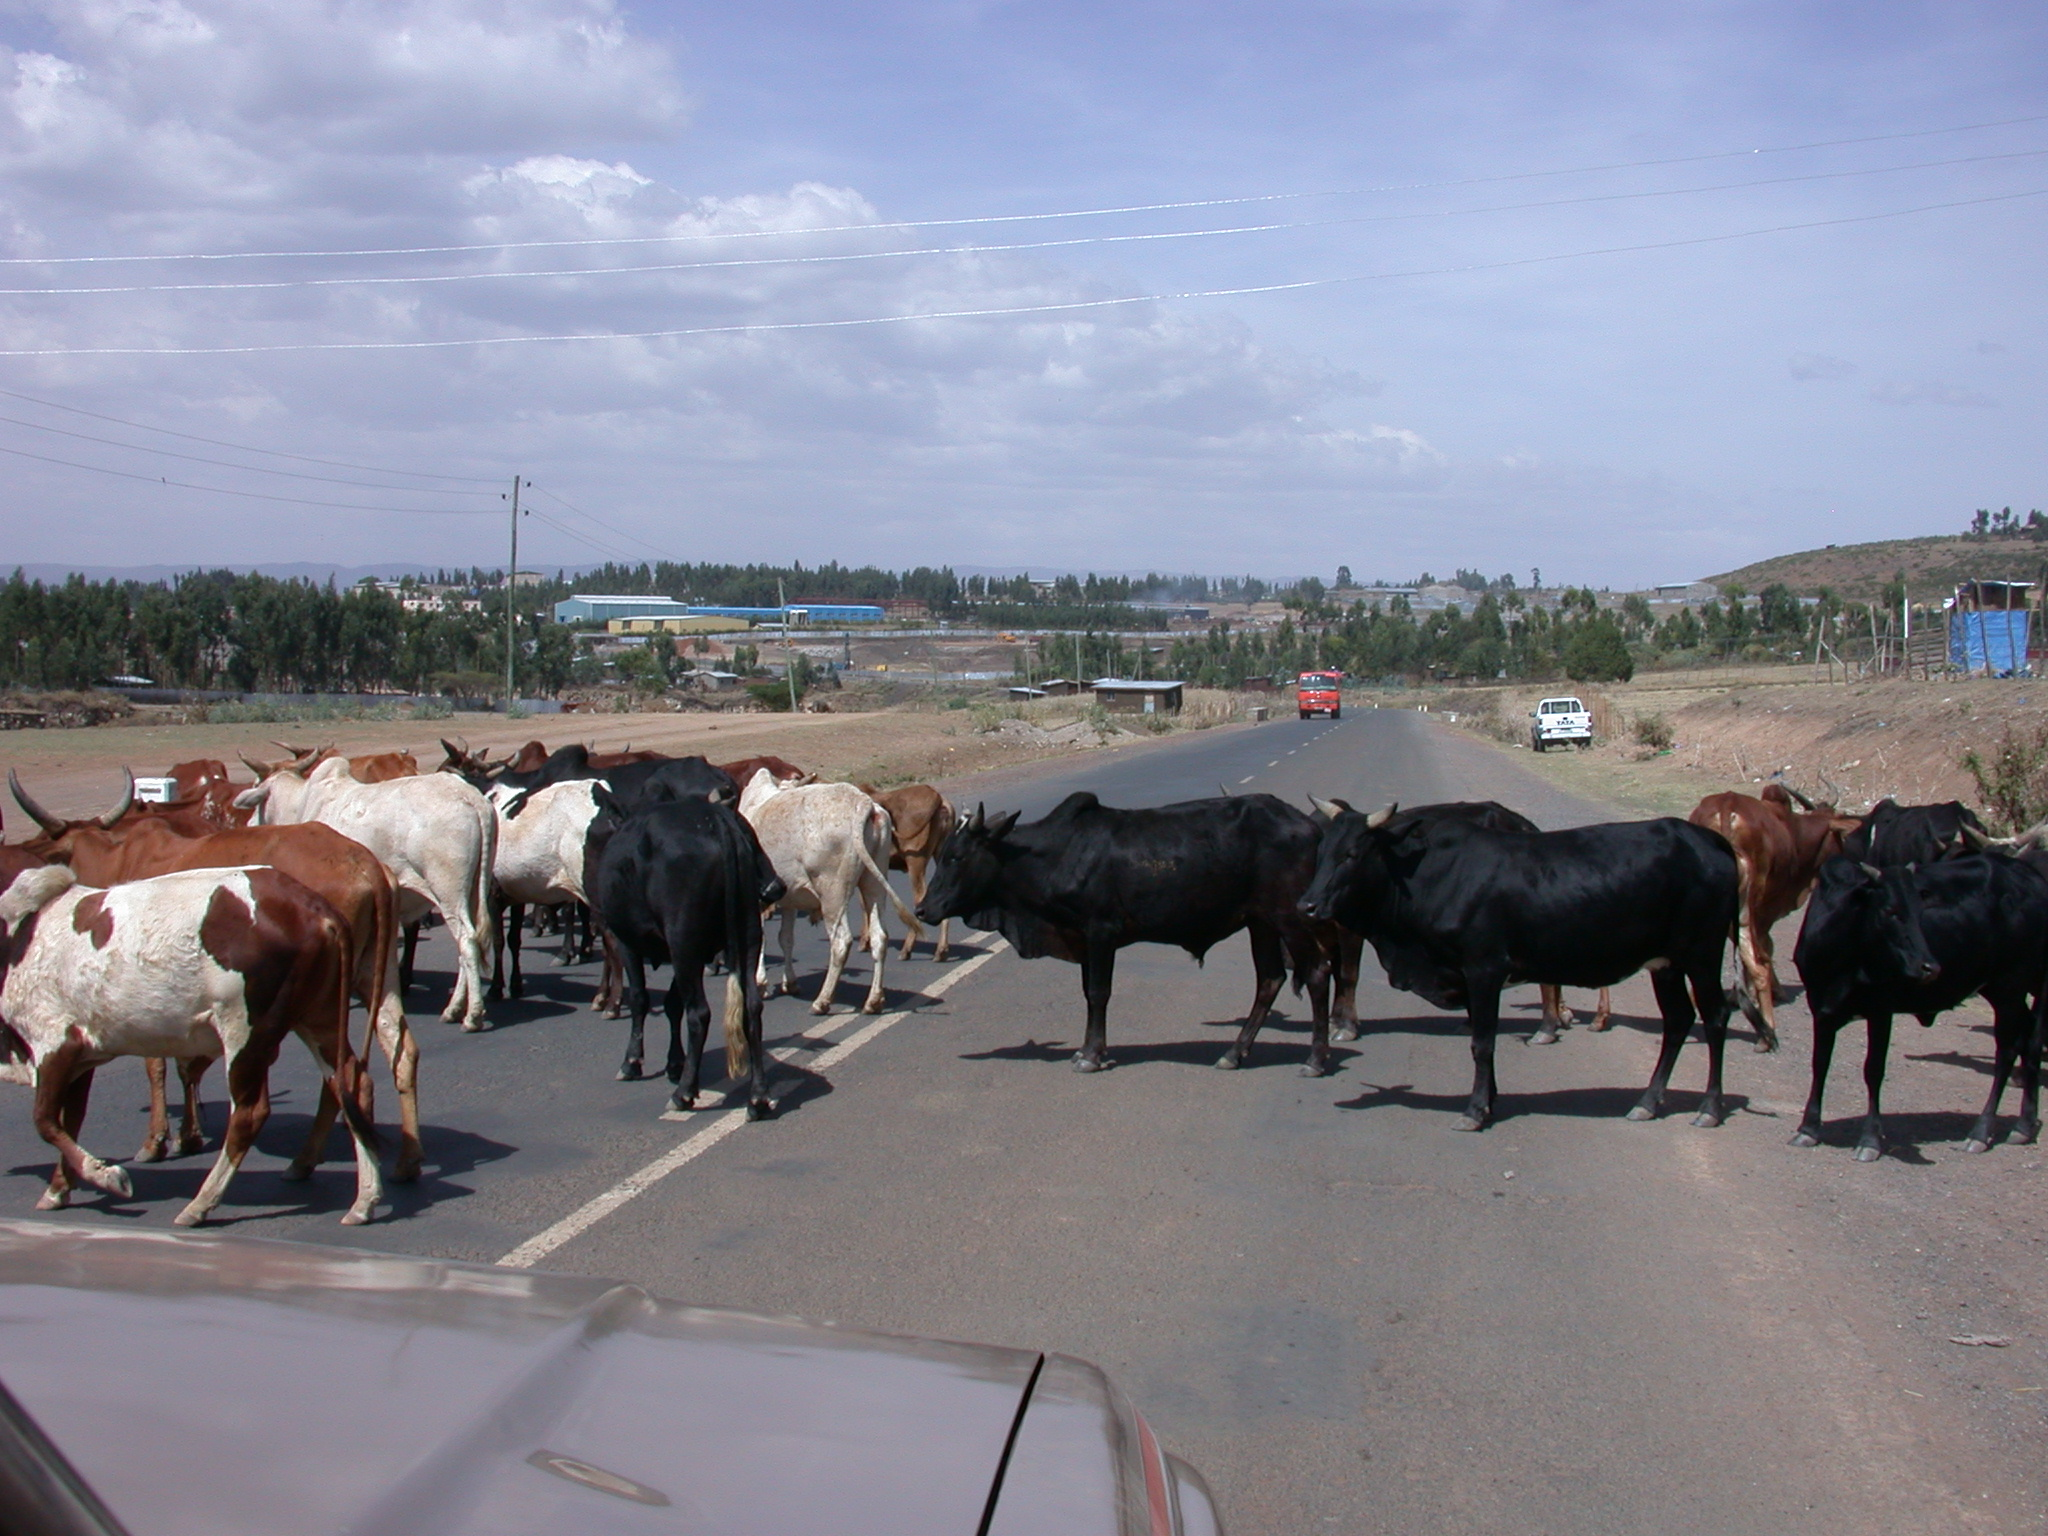 Cows Blocking Street, Route Between Tiya and Addis Ababa, Ethiopia